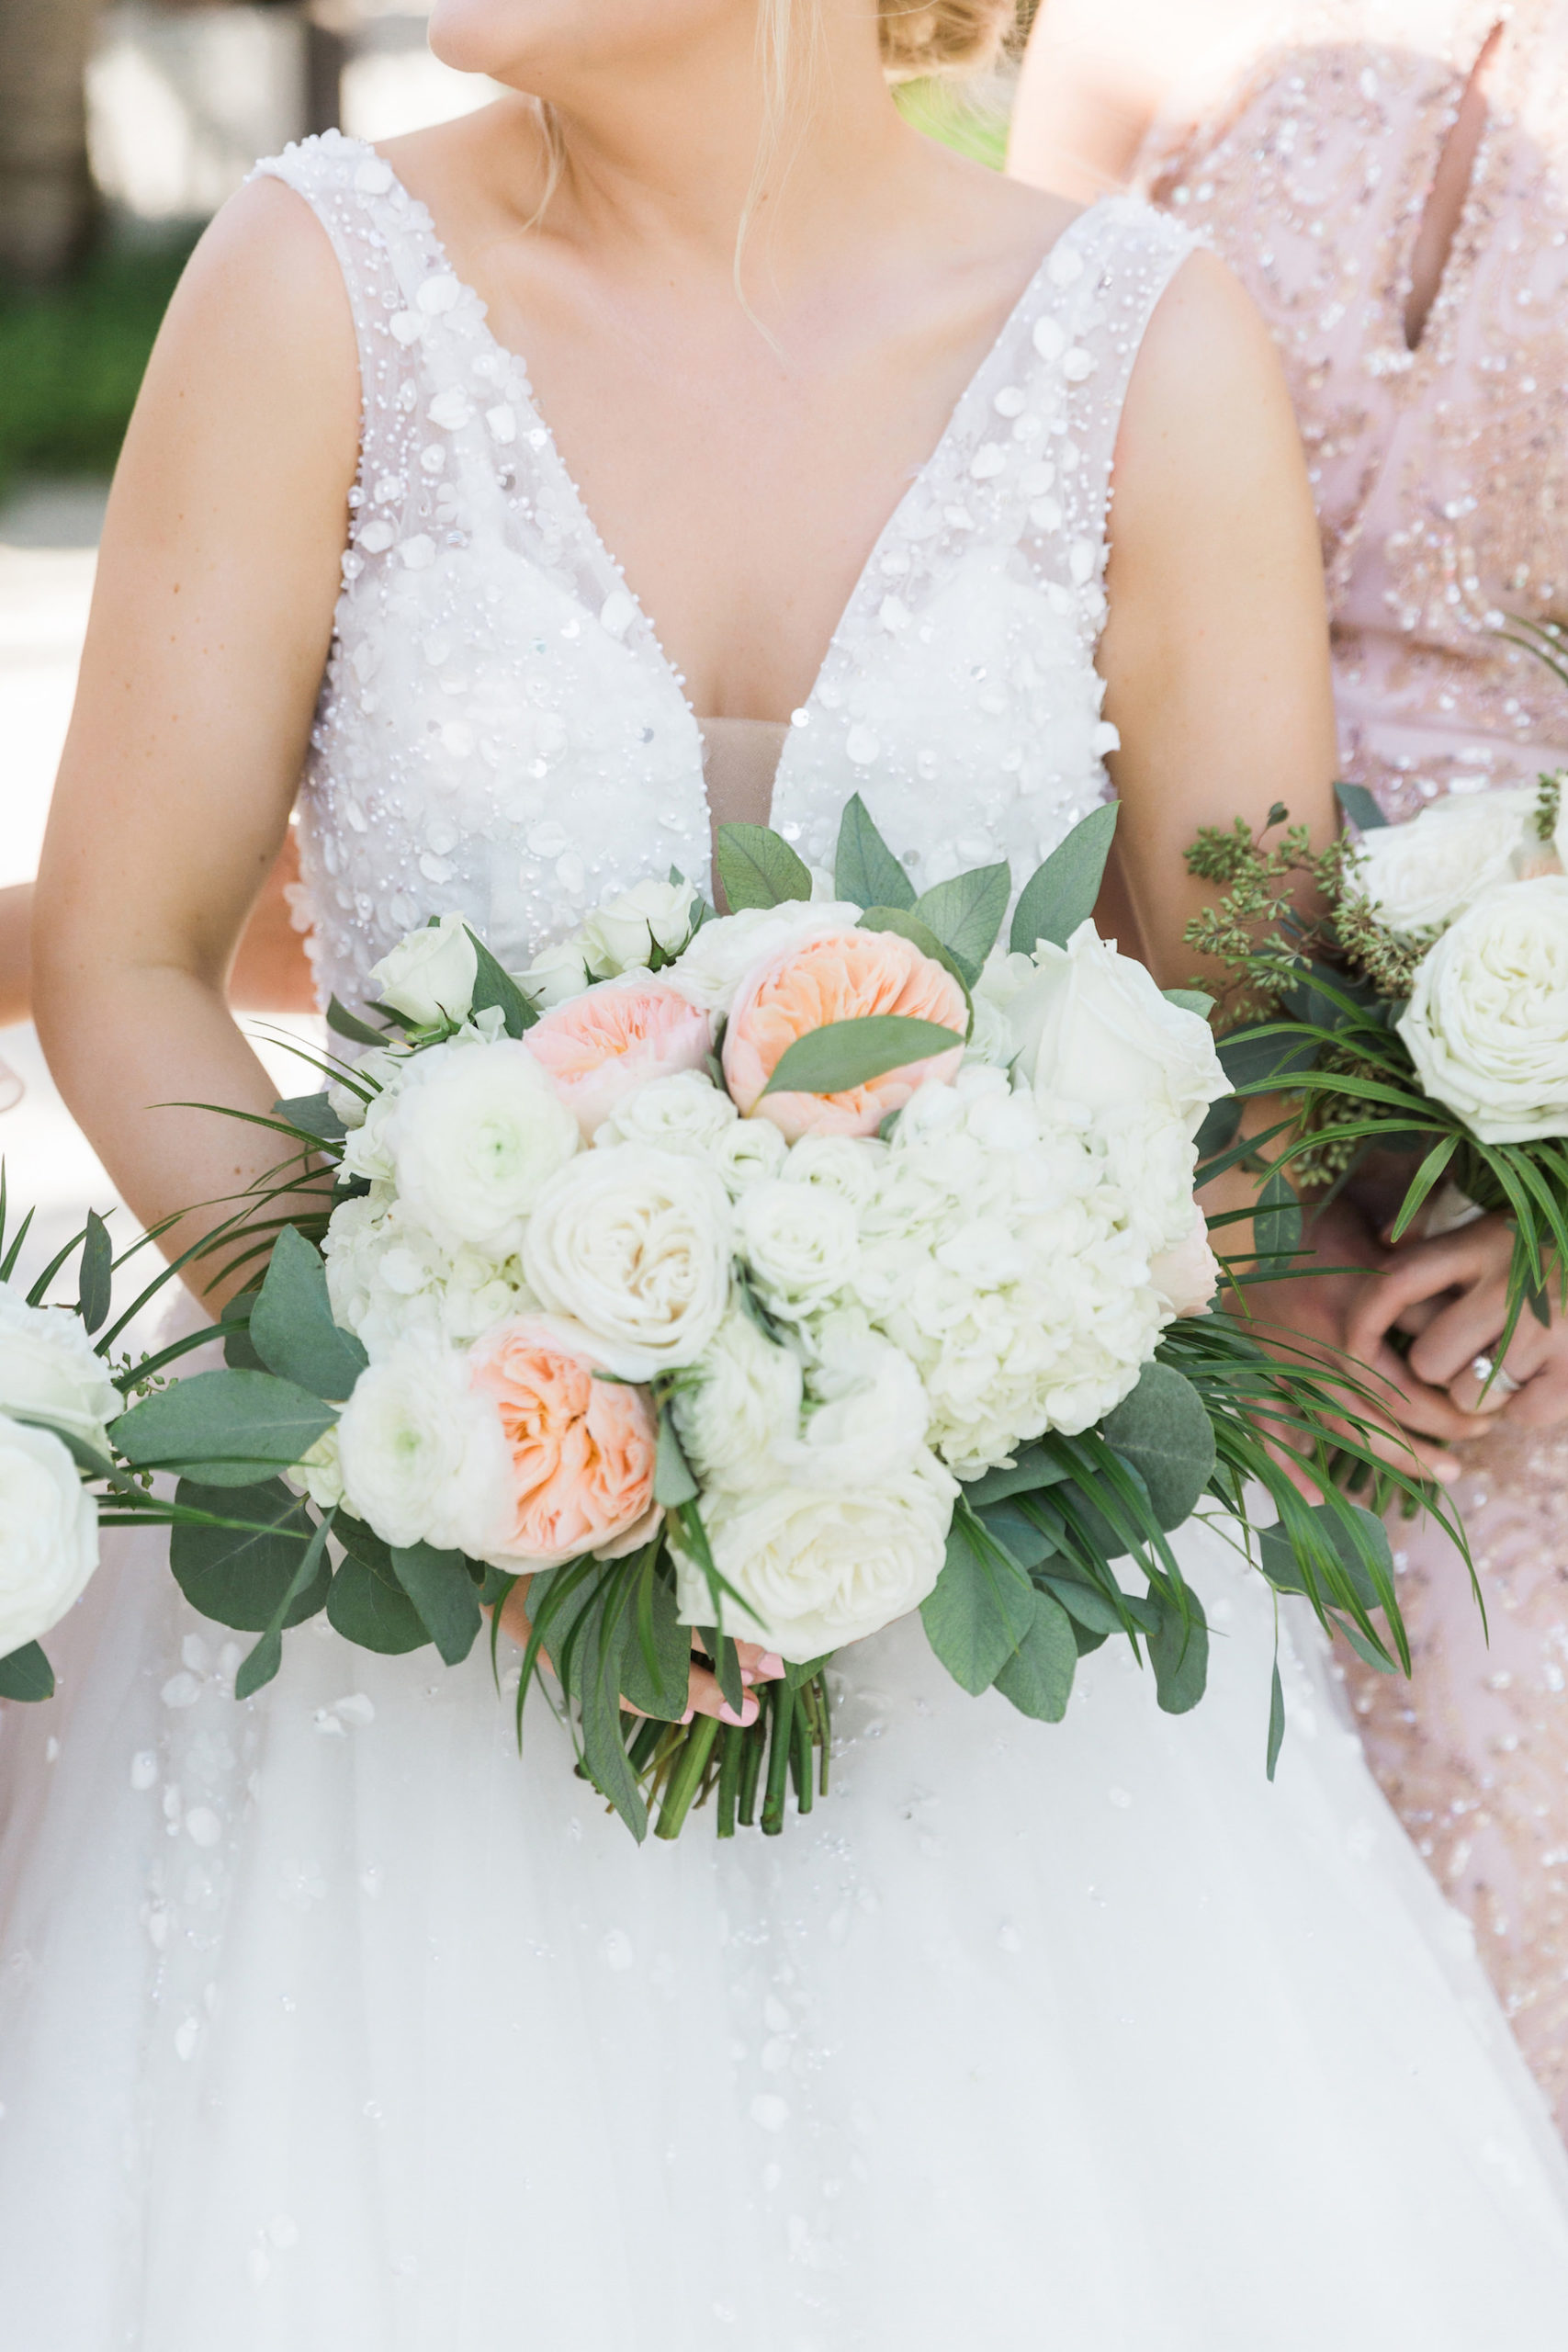 Nicole Spose A-Line Wedding Dress with Embellishments | Pastel White and Peach Bouquet